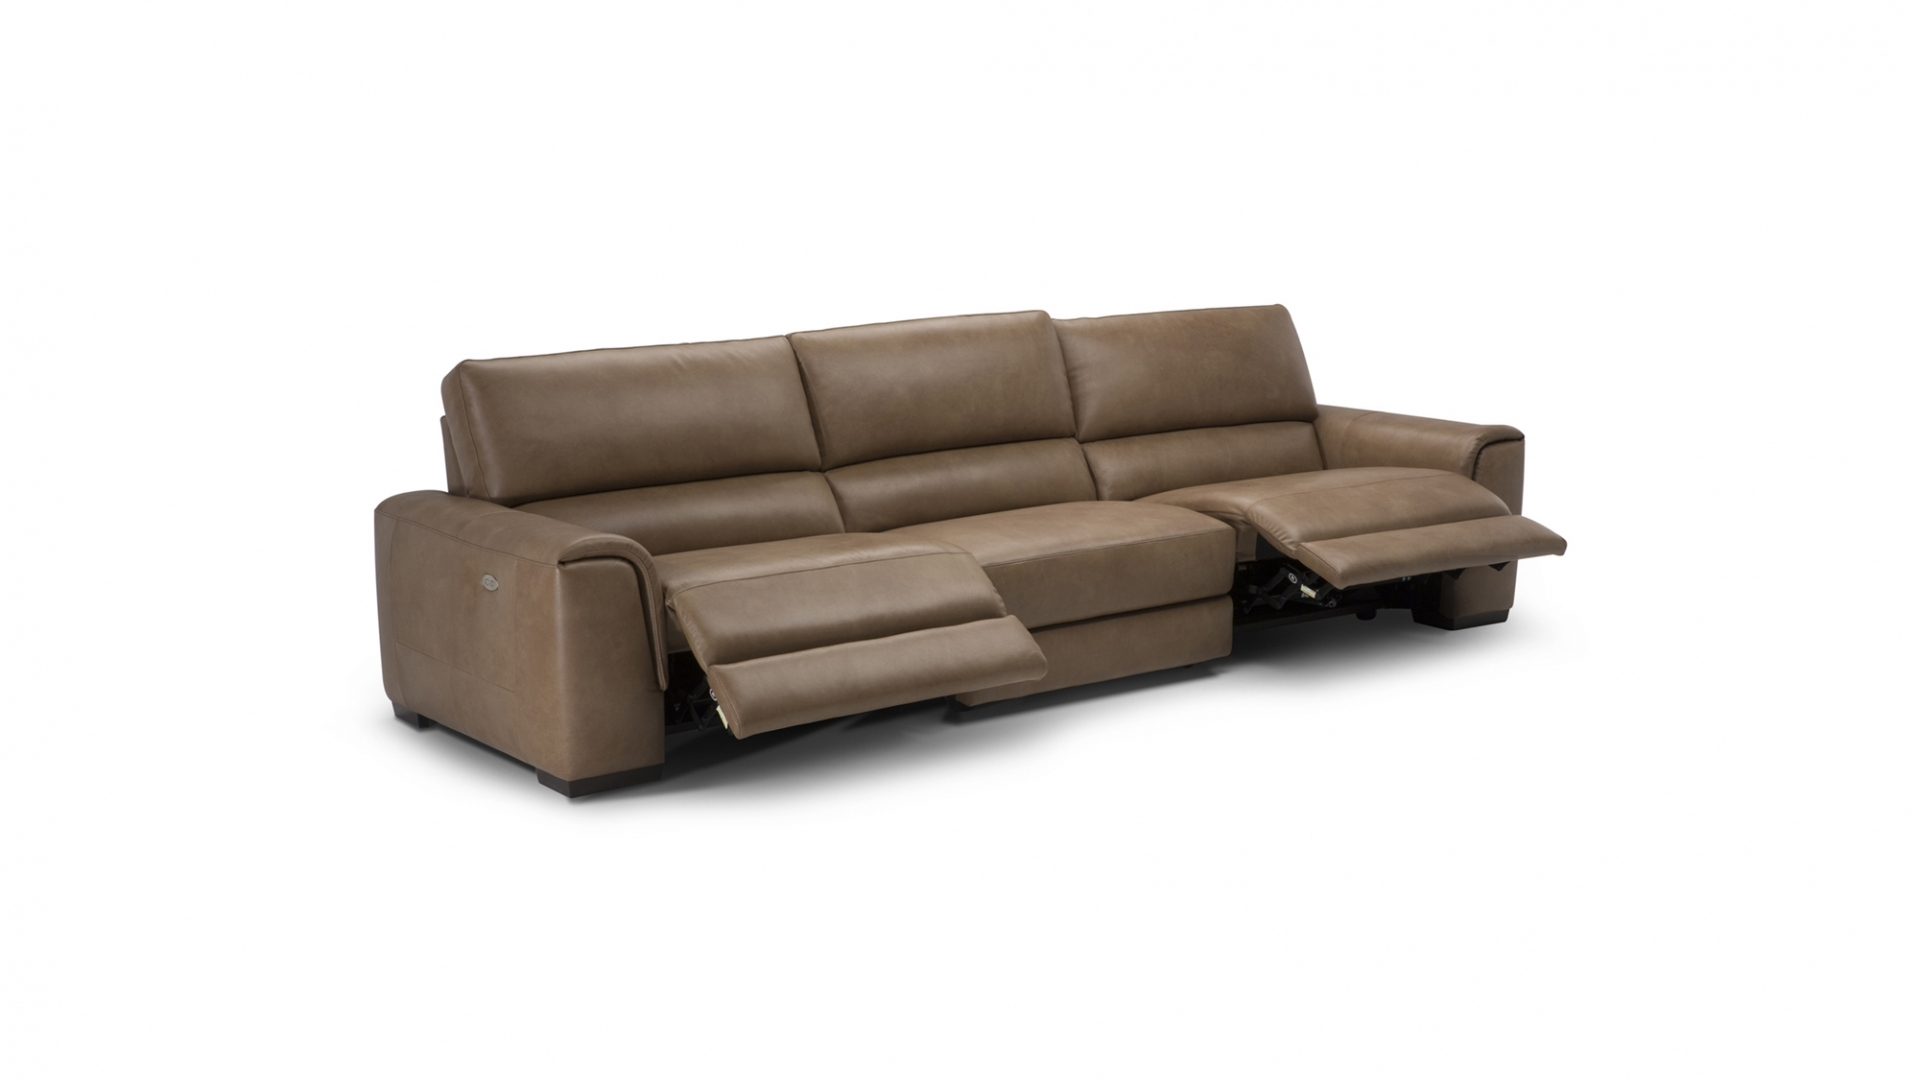 Dandy Sofas Fabric Leather Fabric Leather Natuzzi